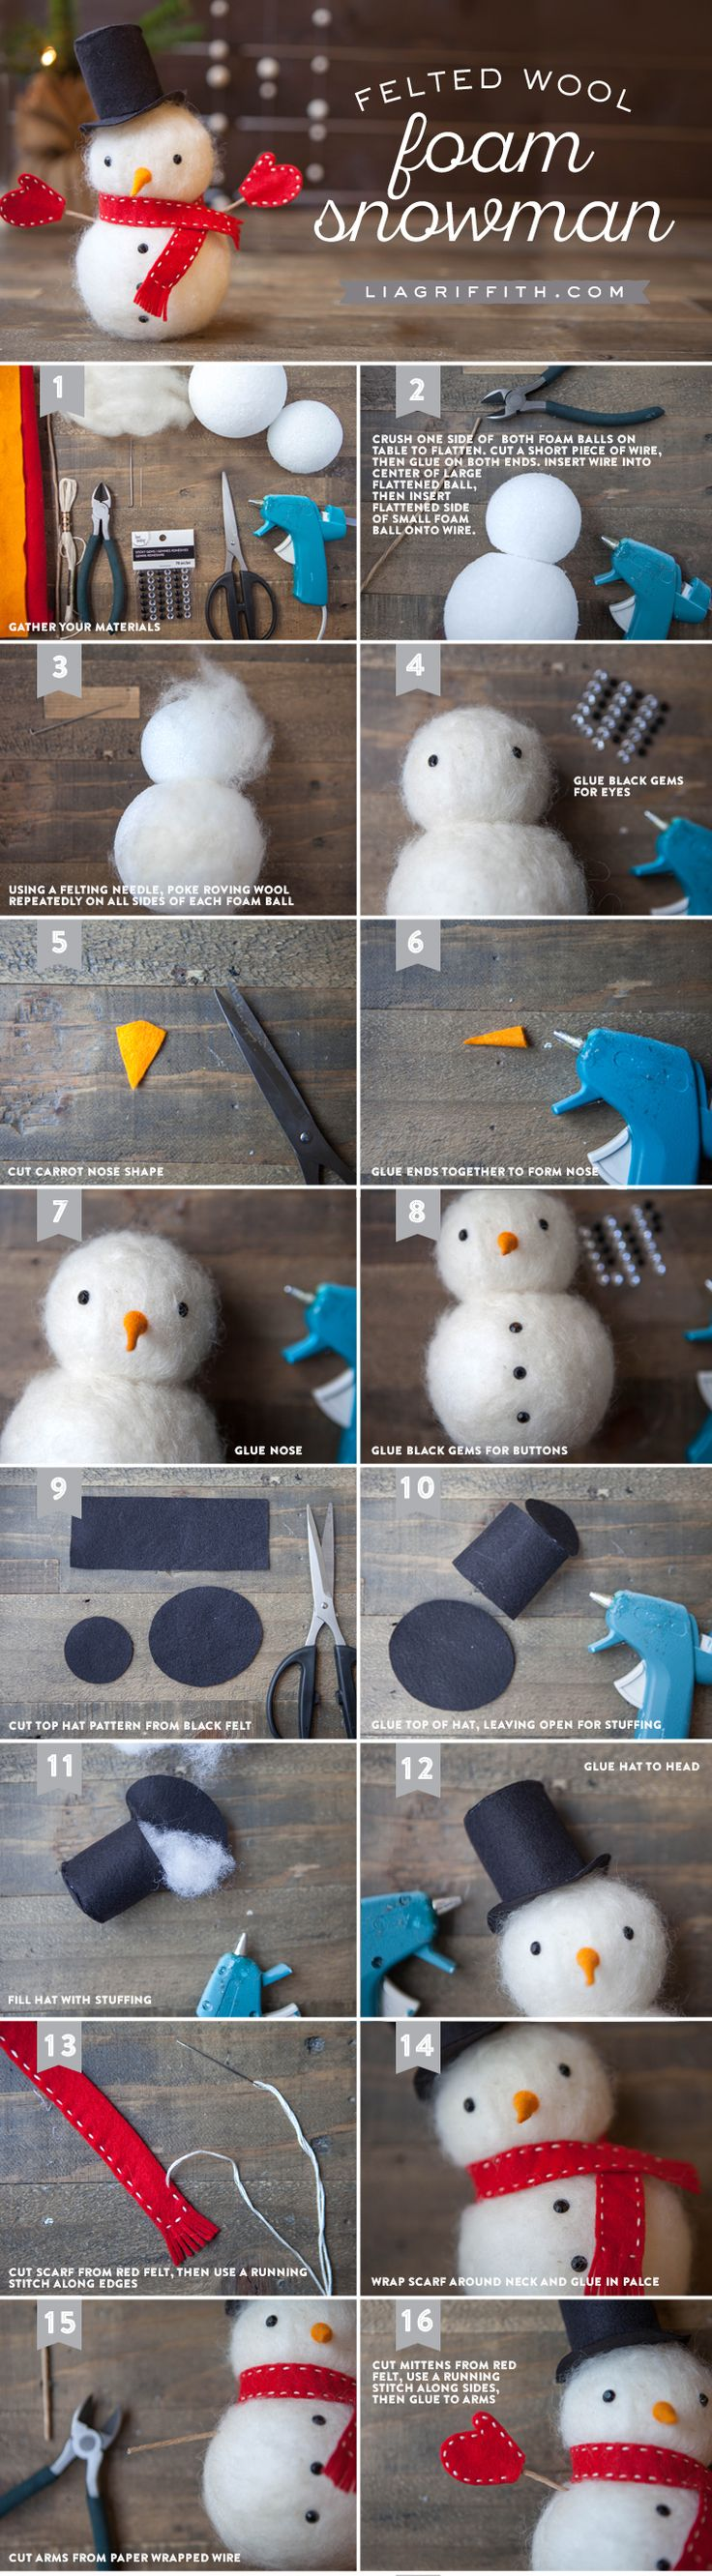 Snowman crafts - felted snowman tutorial                                                                                                                                                      More